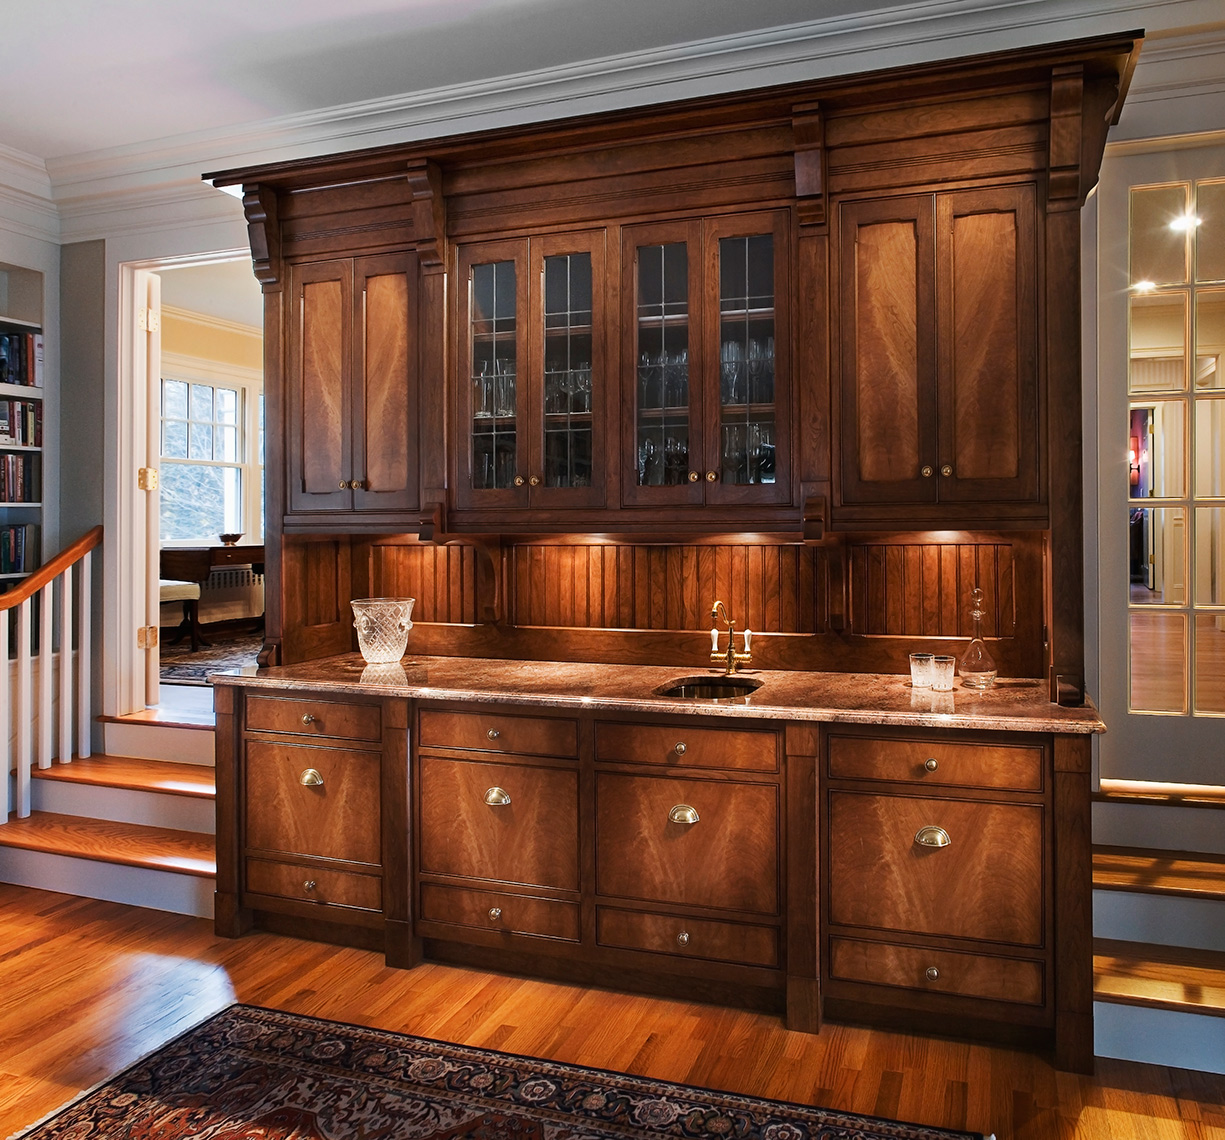 1 Traditional Residential Bar in Figured Cherry